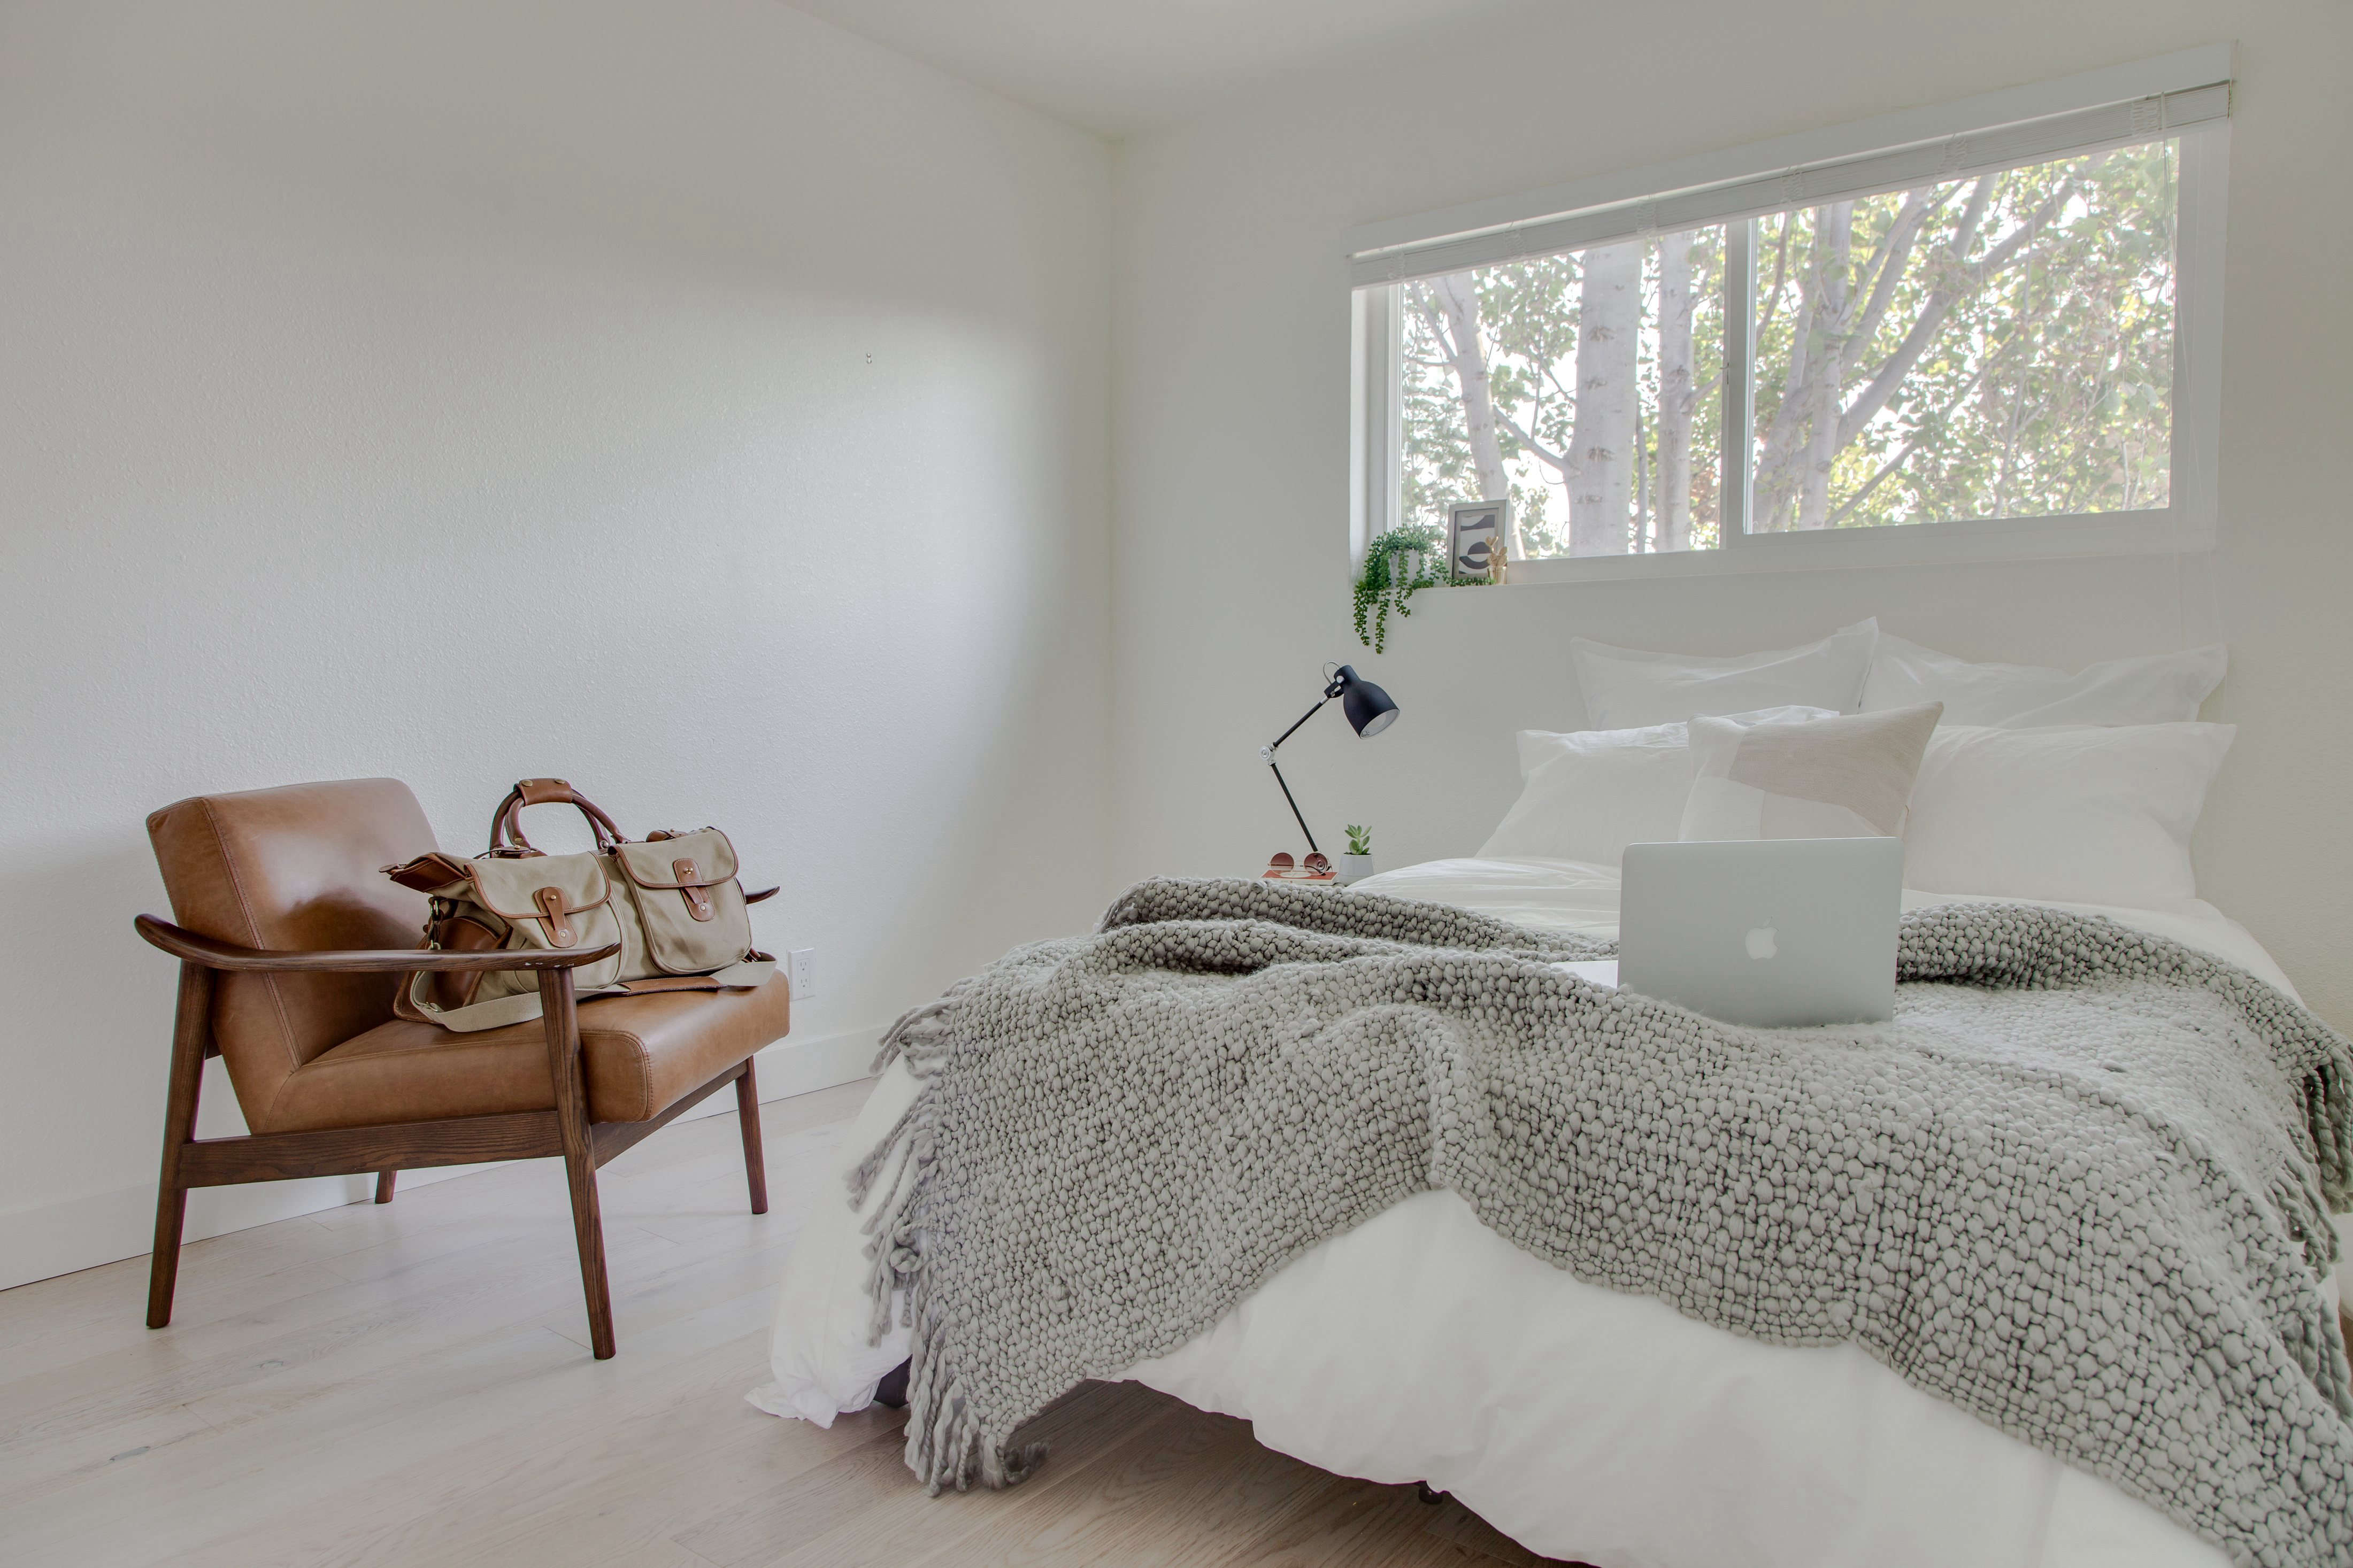 Cute Expert Advice Ideas for an Elevated Dorm Room from Brooklyn us Top Co Living Designer Remodelista